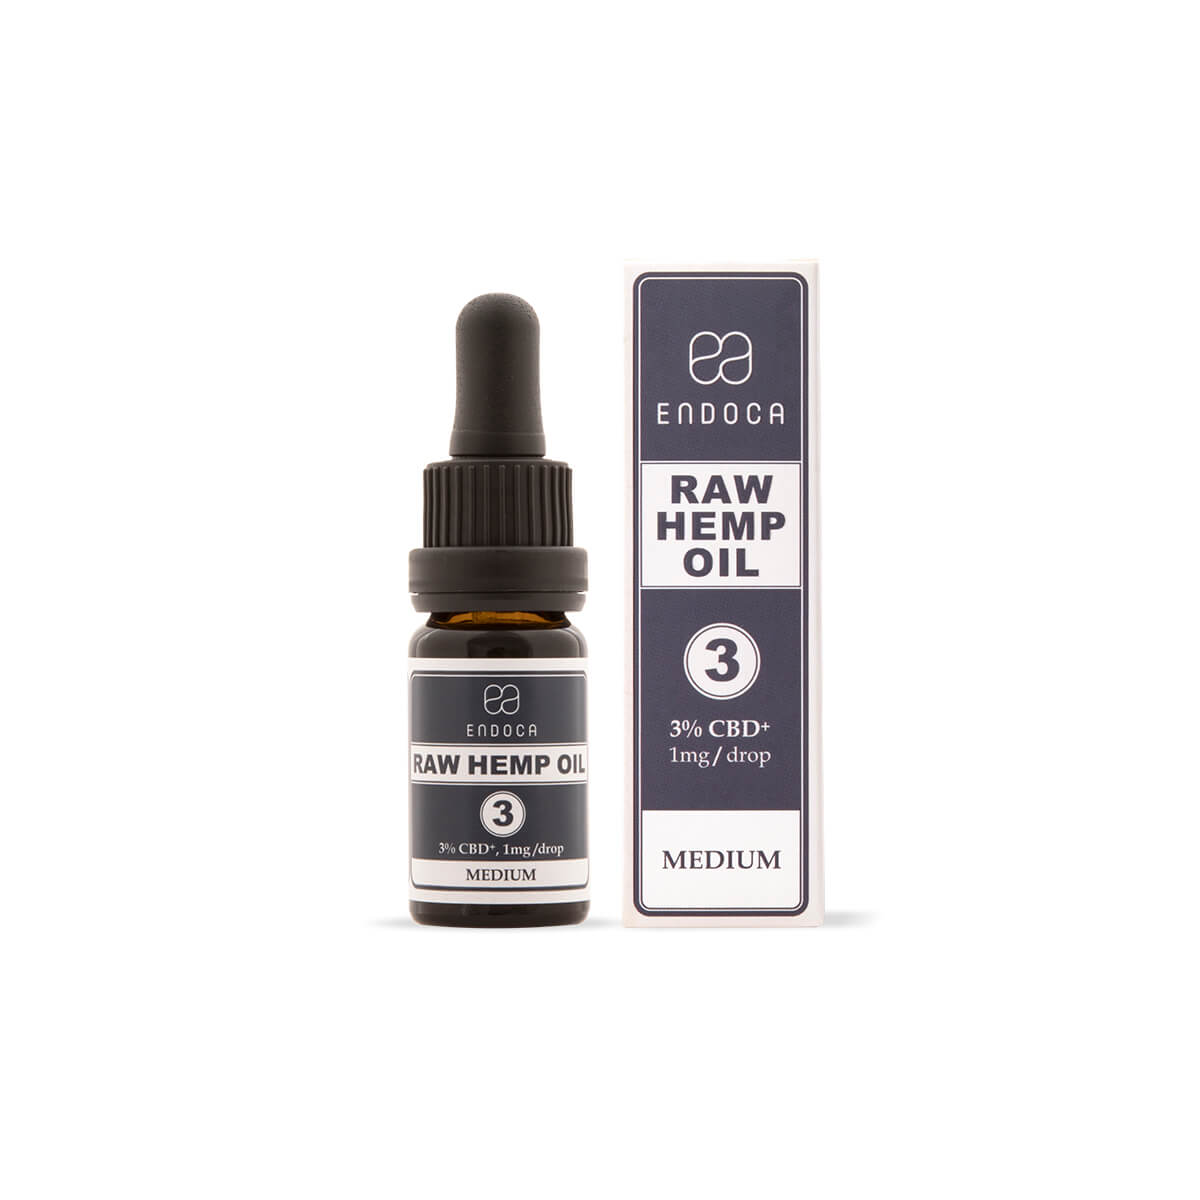 RAW CBD Oil – 300mg 3% CBD+CBDa